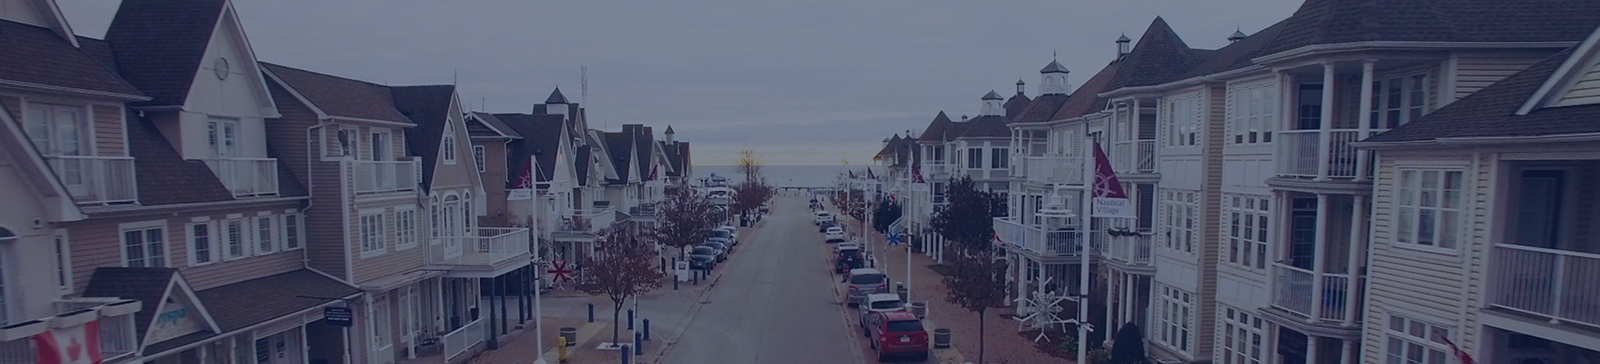 Image of Nautical village in Pickering